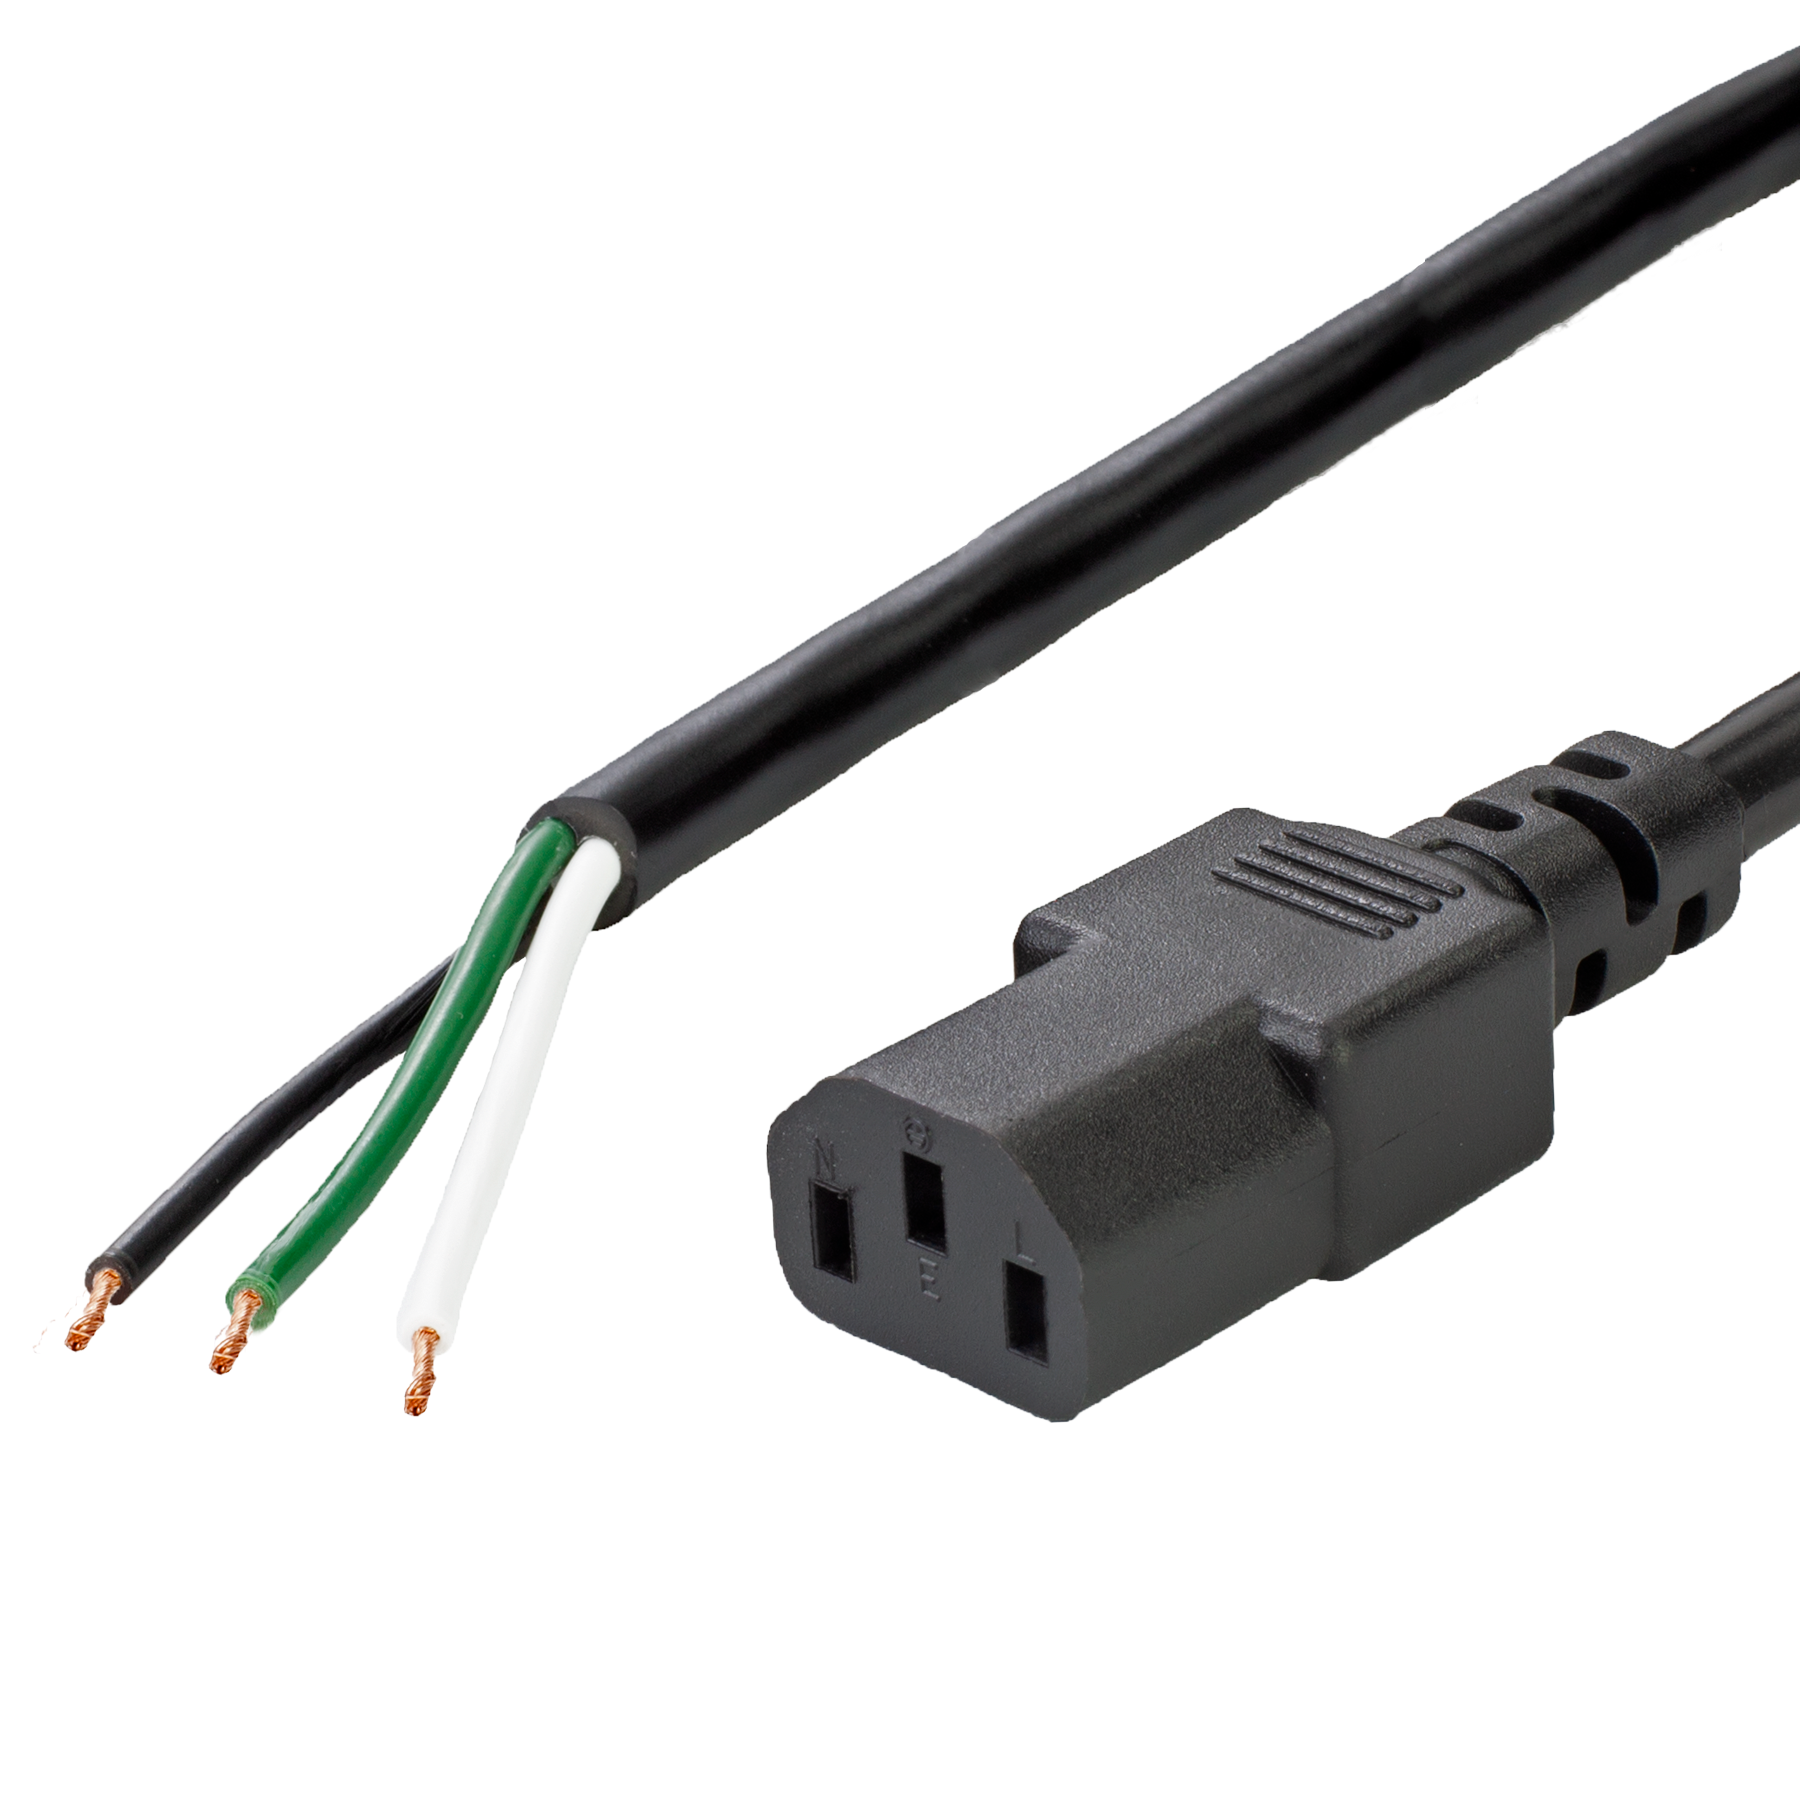 15A OPEN to IEC 60320 C13 Power Cords - BLACK